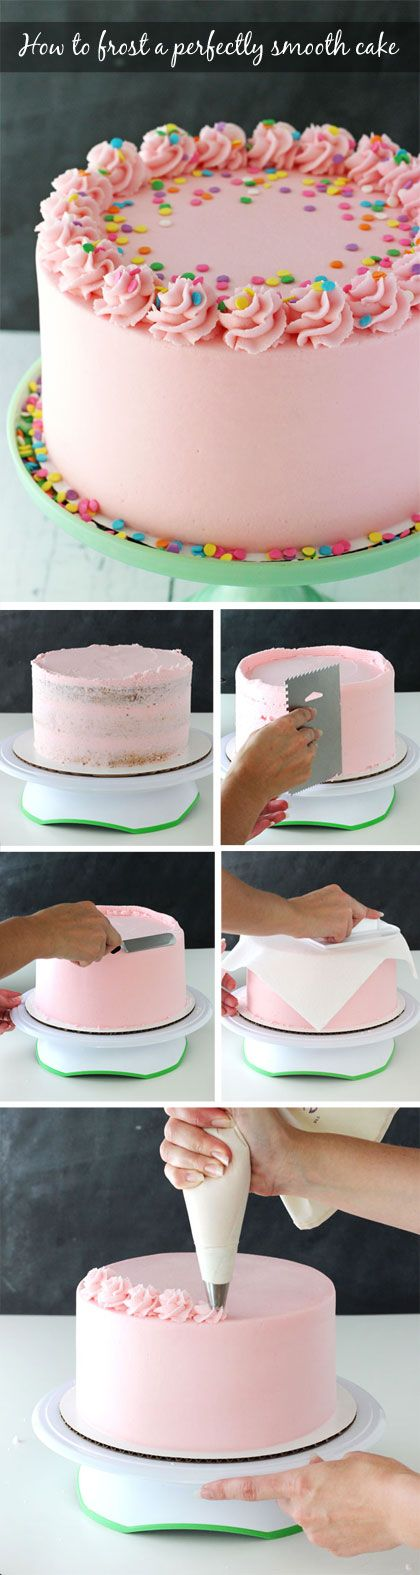 How to Frost a Cake with Buttercream – Step-by-Step Tutorial (Photos)